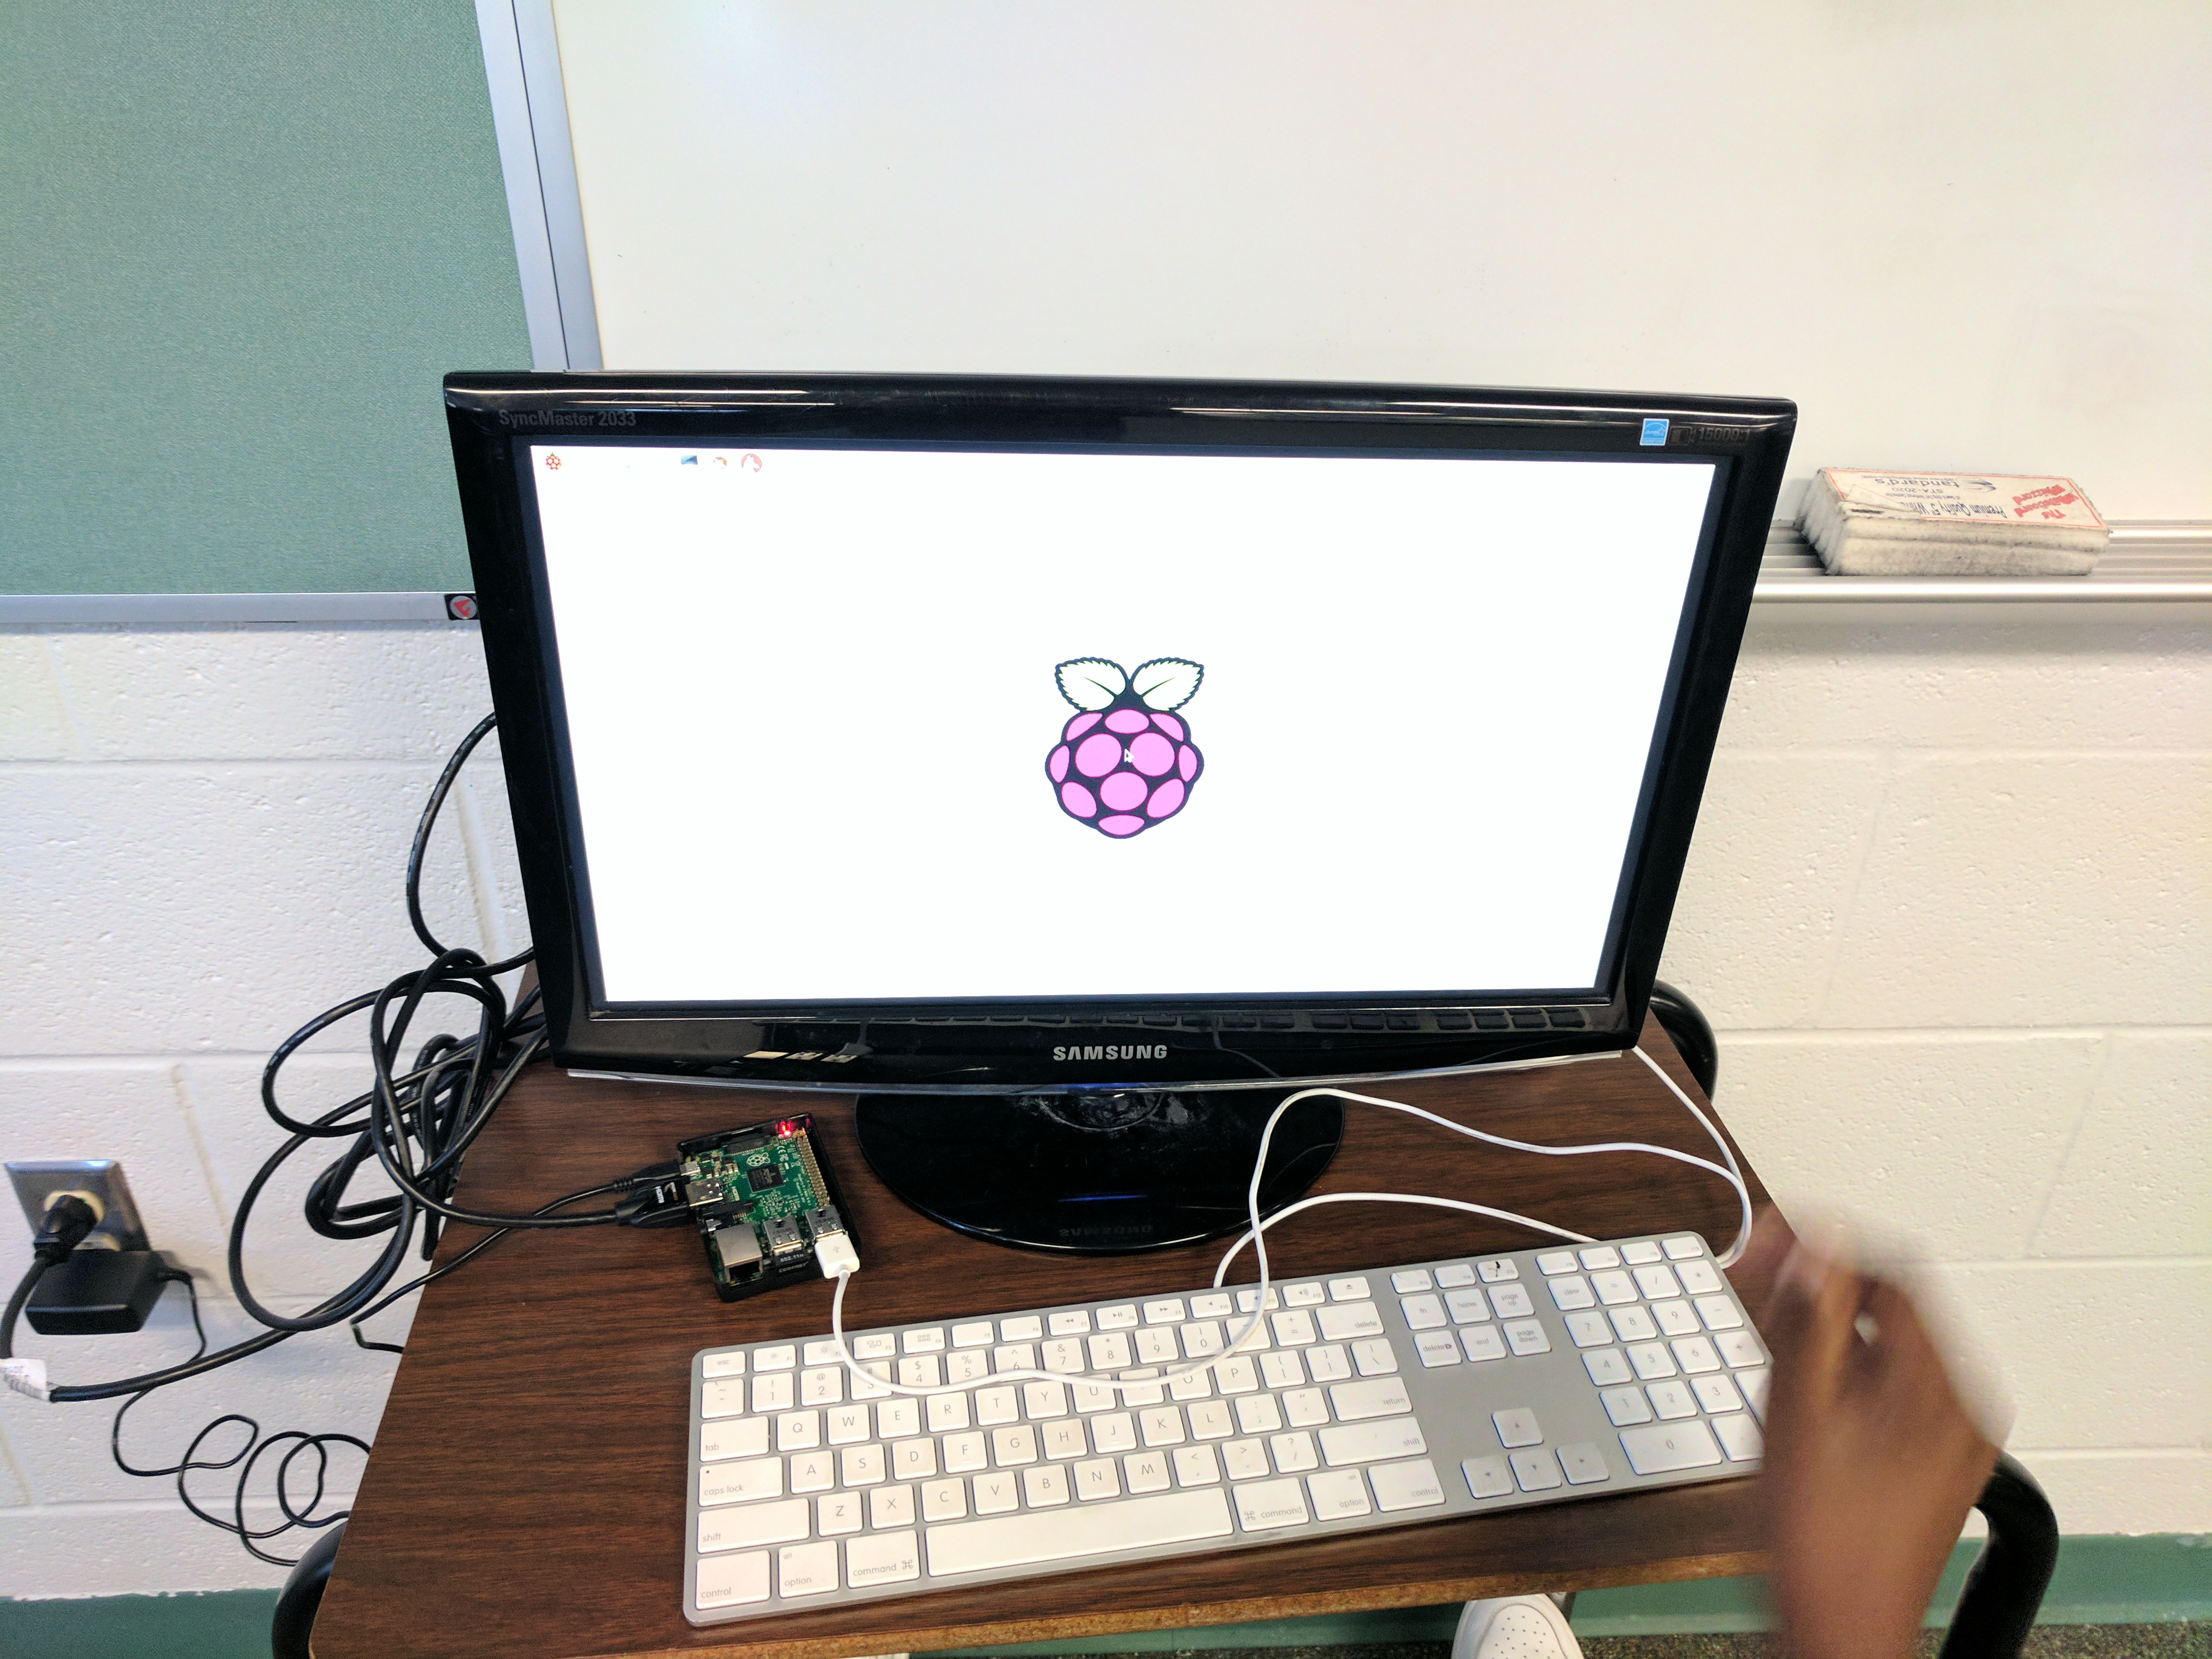 A picture of a computer monitor with the raspberry pi boot-up screen on it